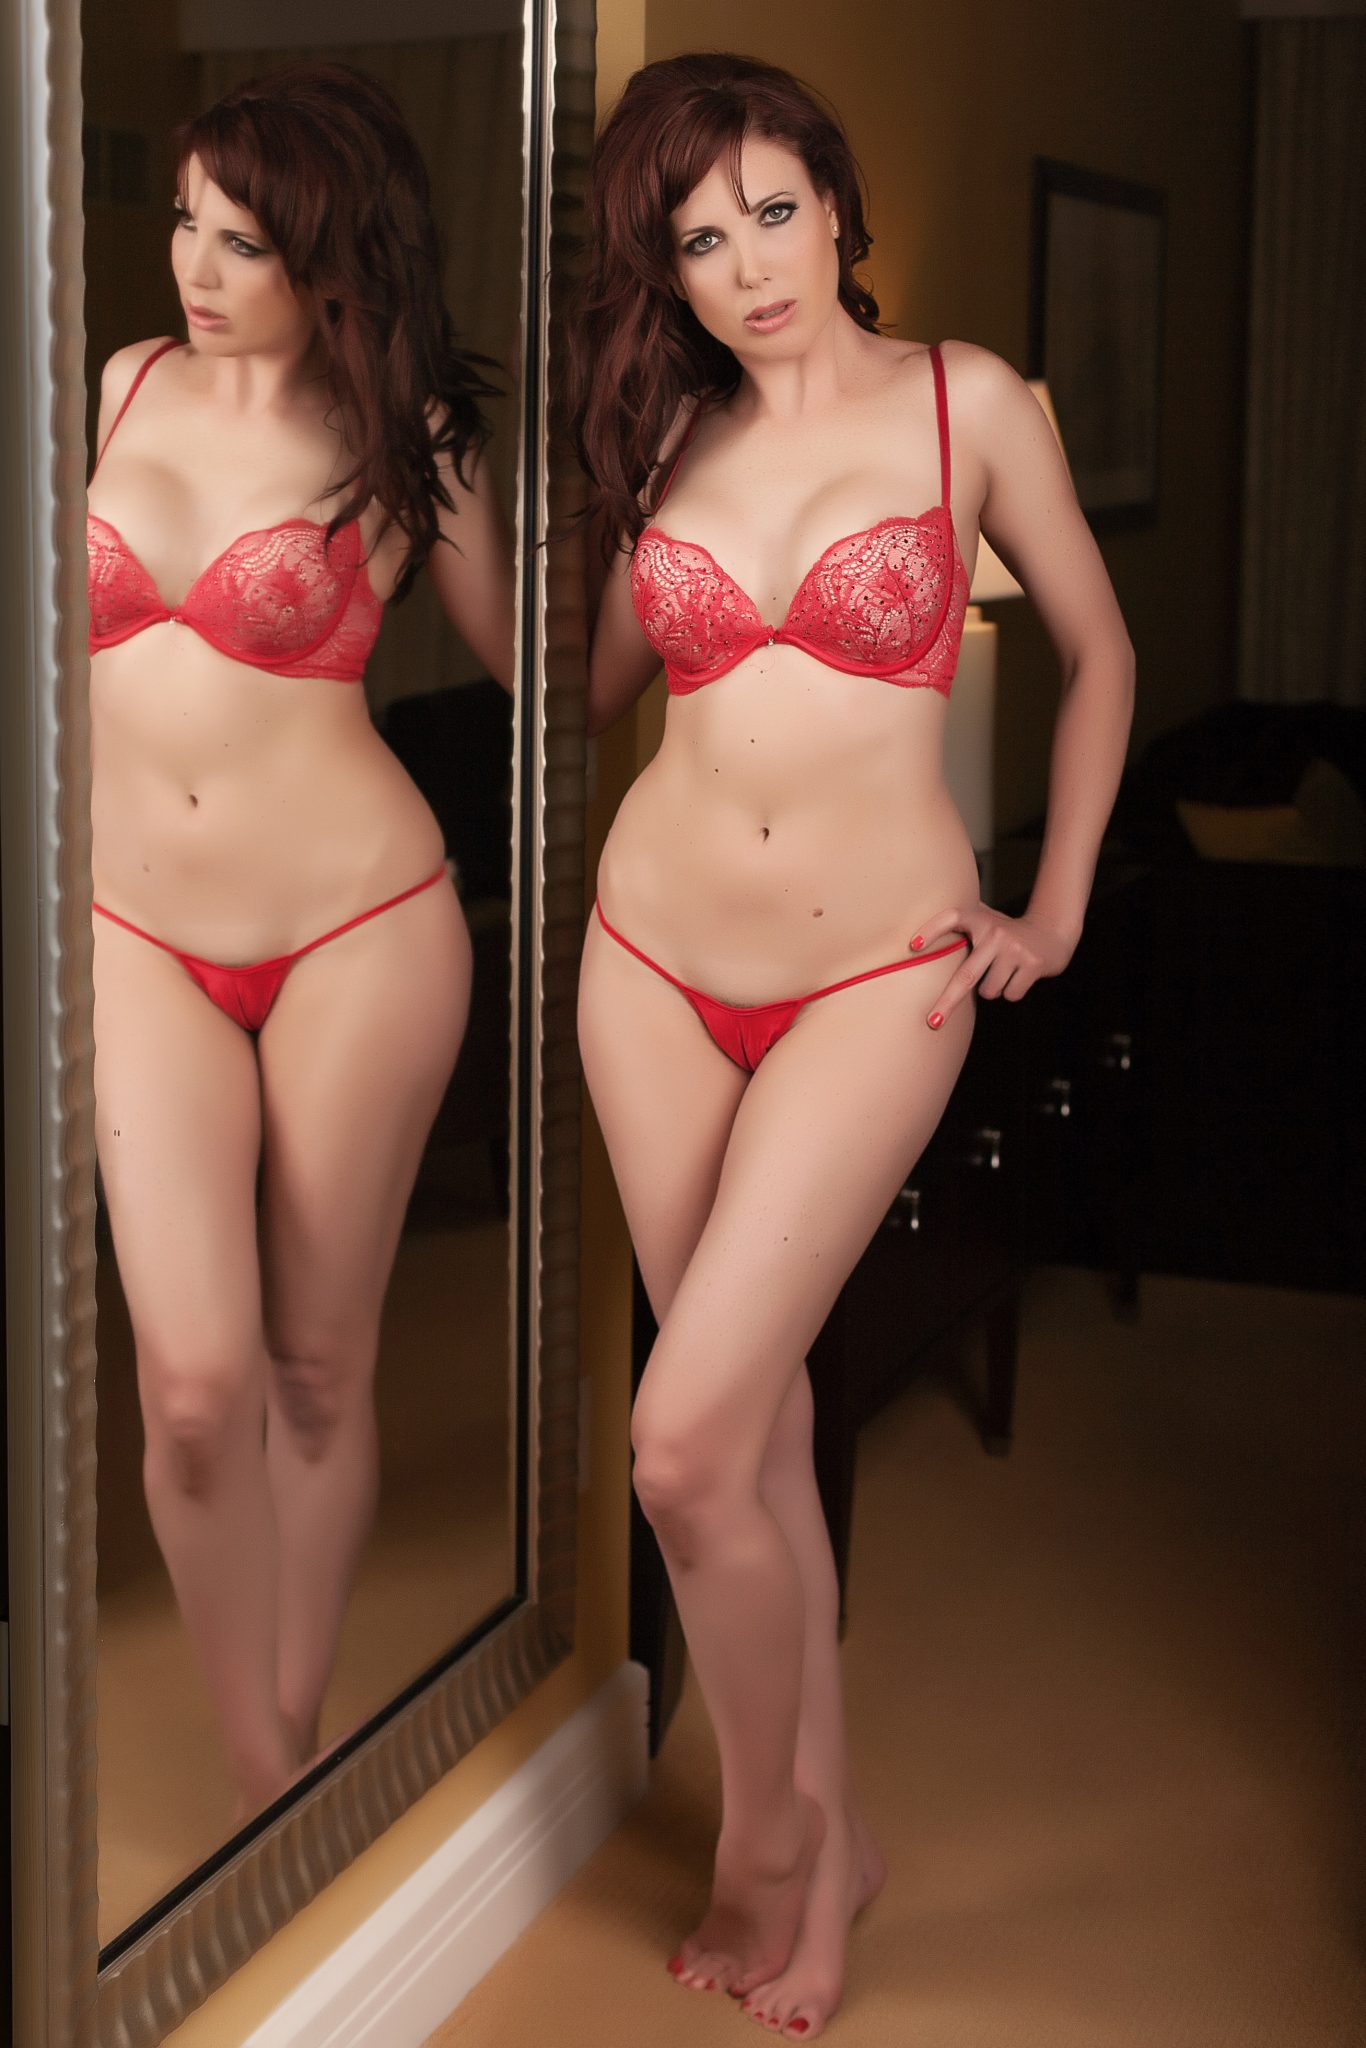 Reflection boudoir using a mirror in Vegas for boudoir shoot with Haute Shots.